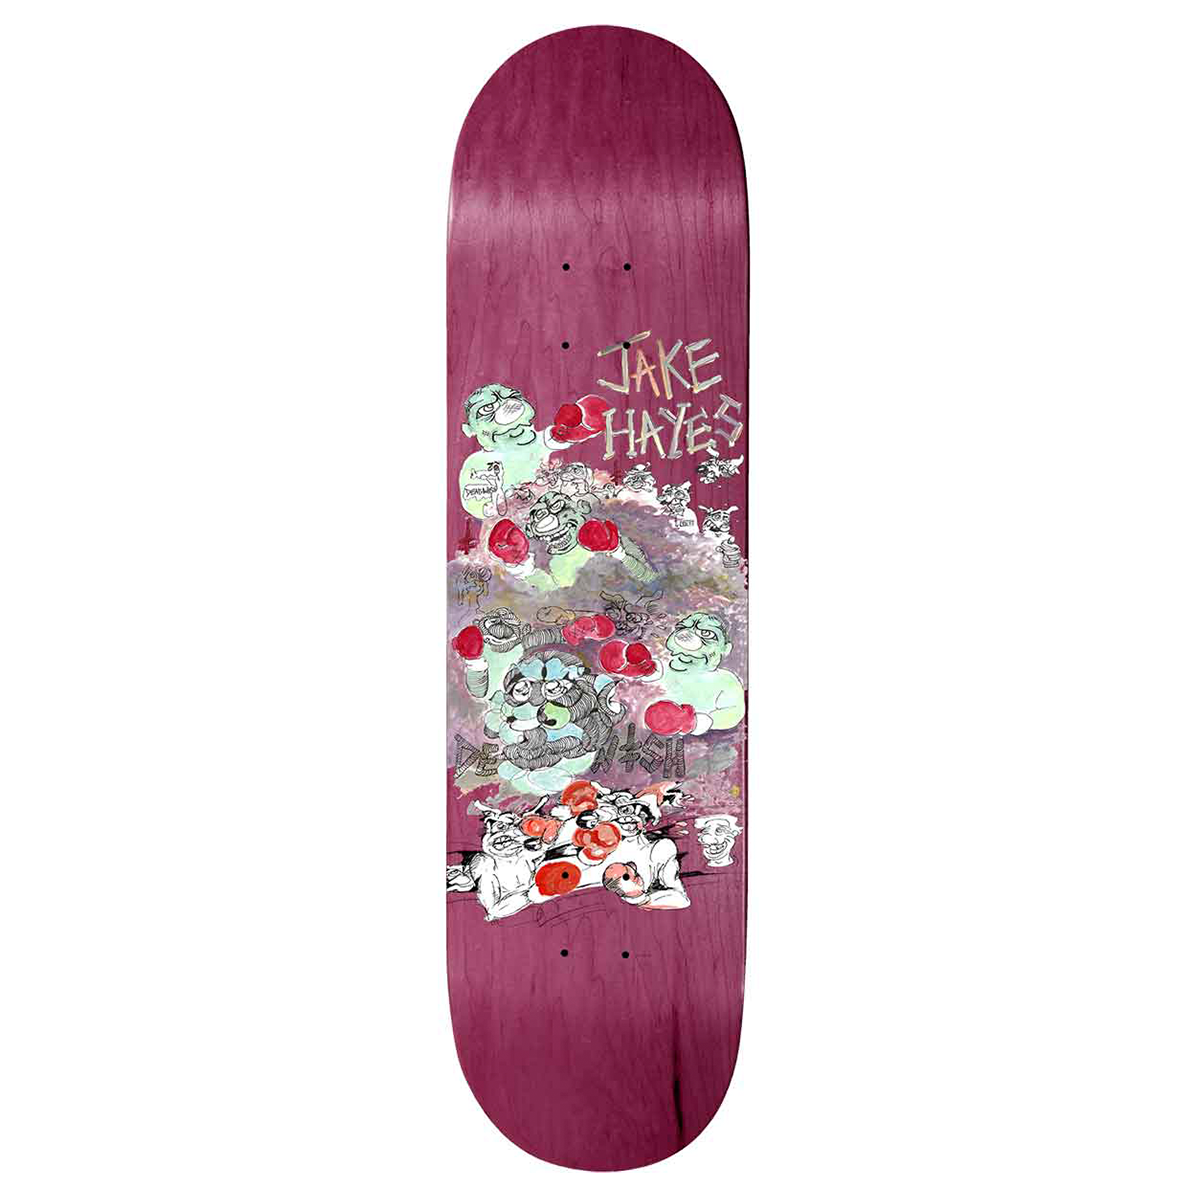 Deathwish Jake Hayes Mice and Men Deck size 8.125